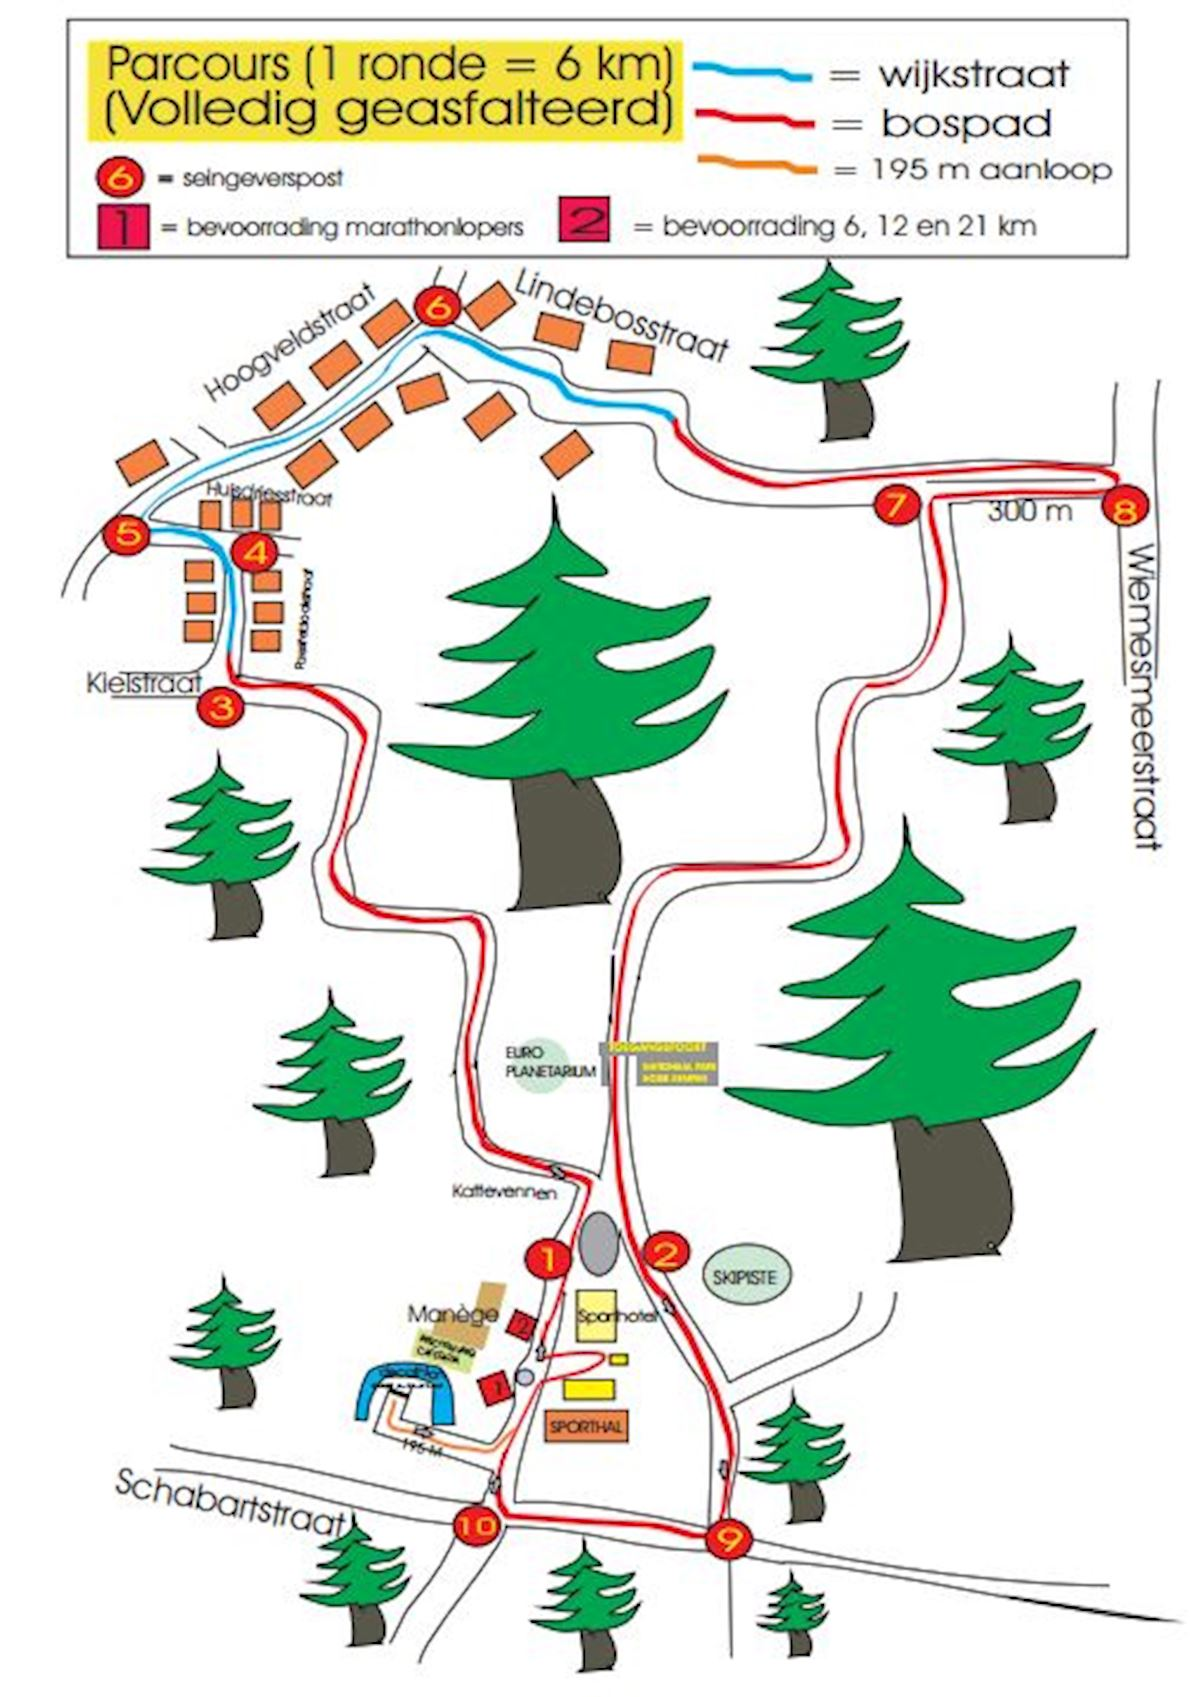 Memorial Louis Persoon Marathon Mappa del percorso